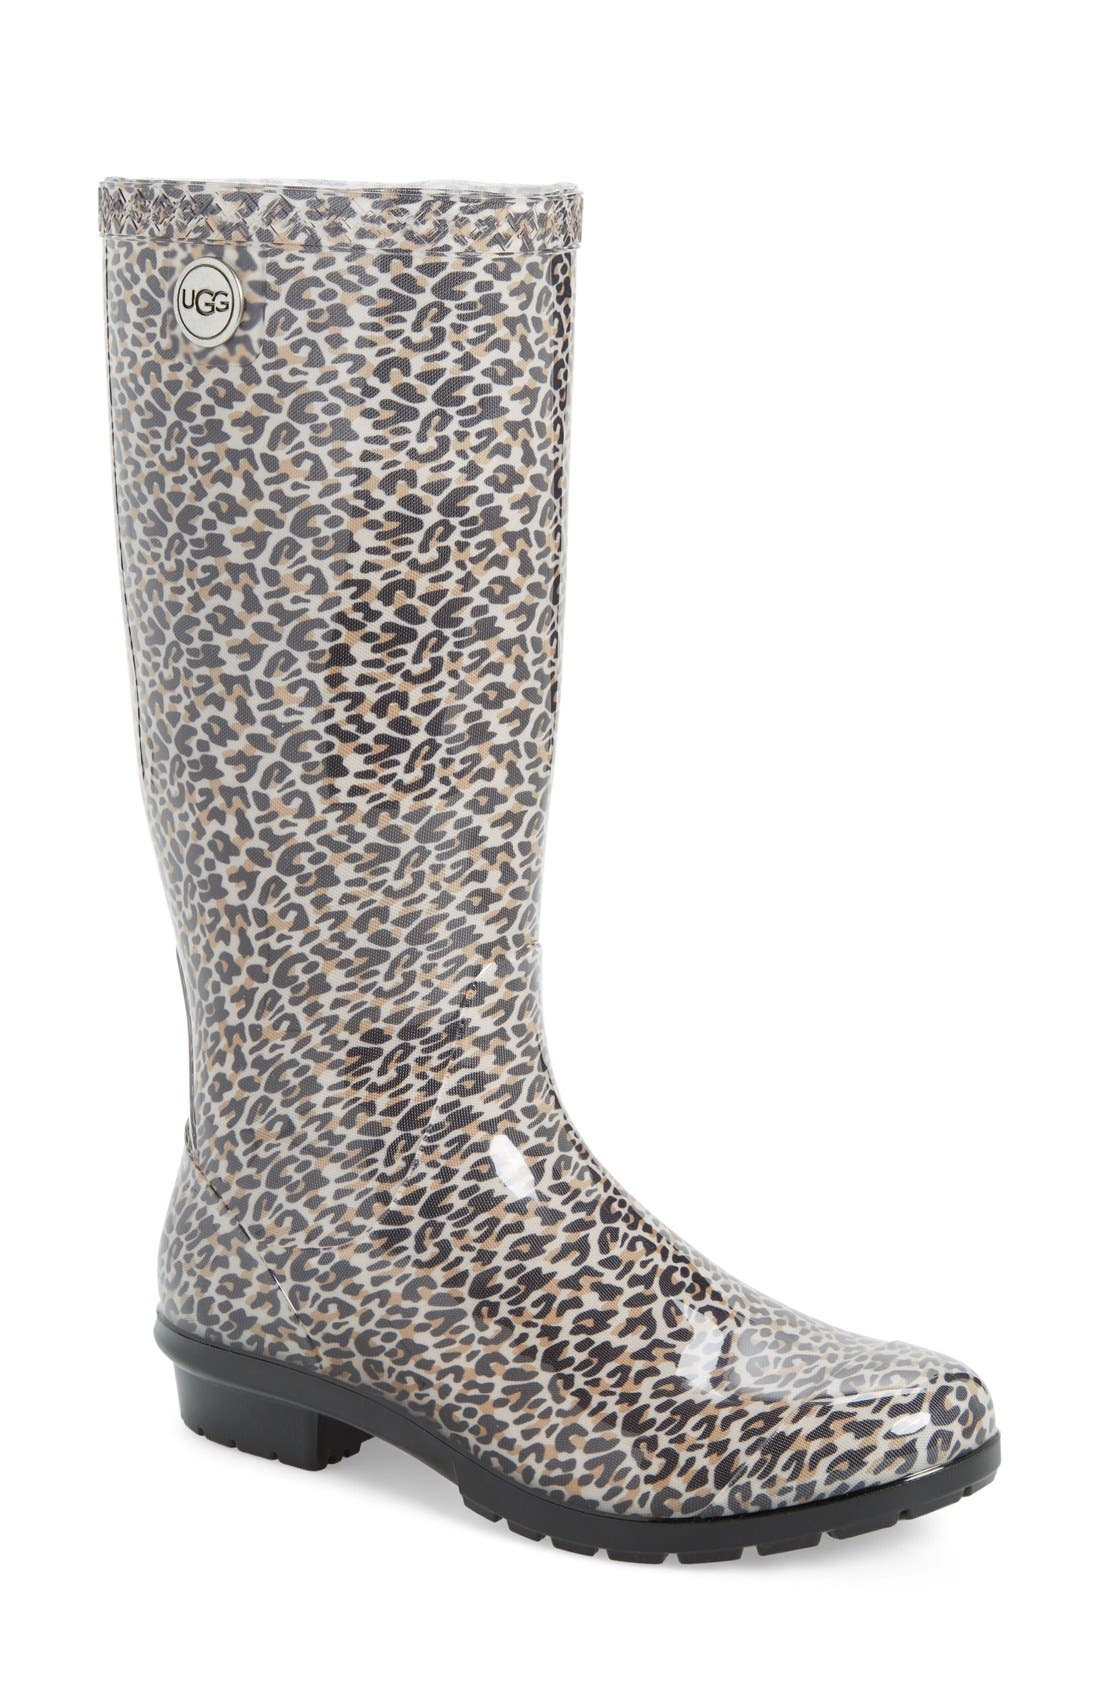 Alternate Image 1 Selected - UGG® Shaye Rain Boot (Women)